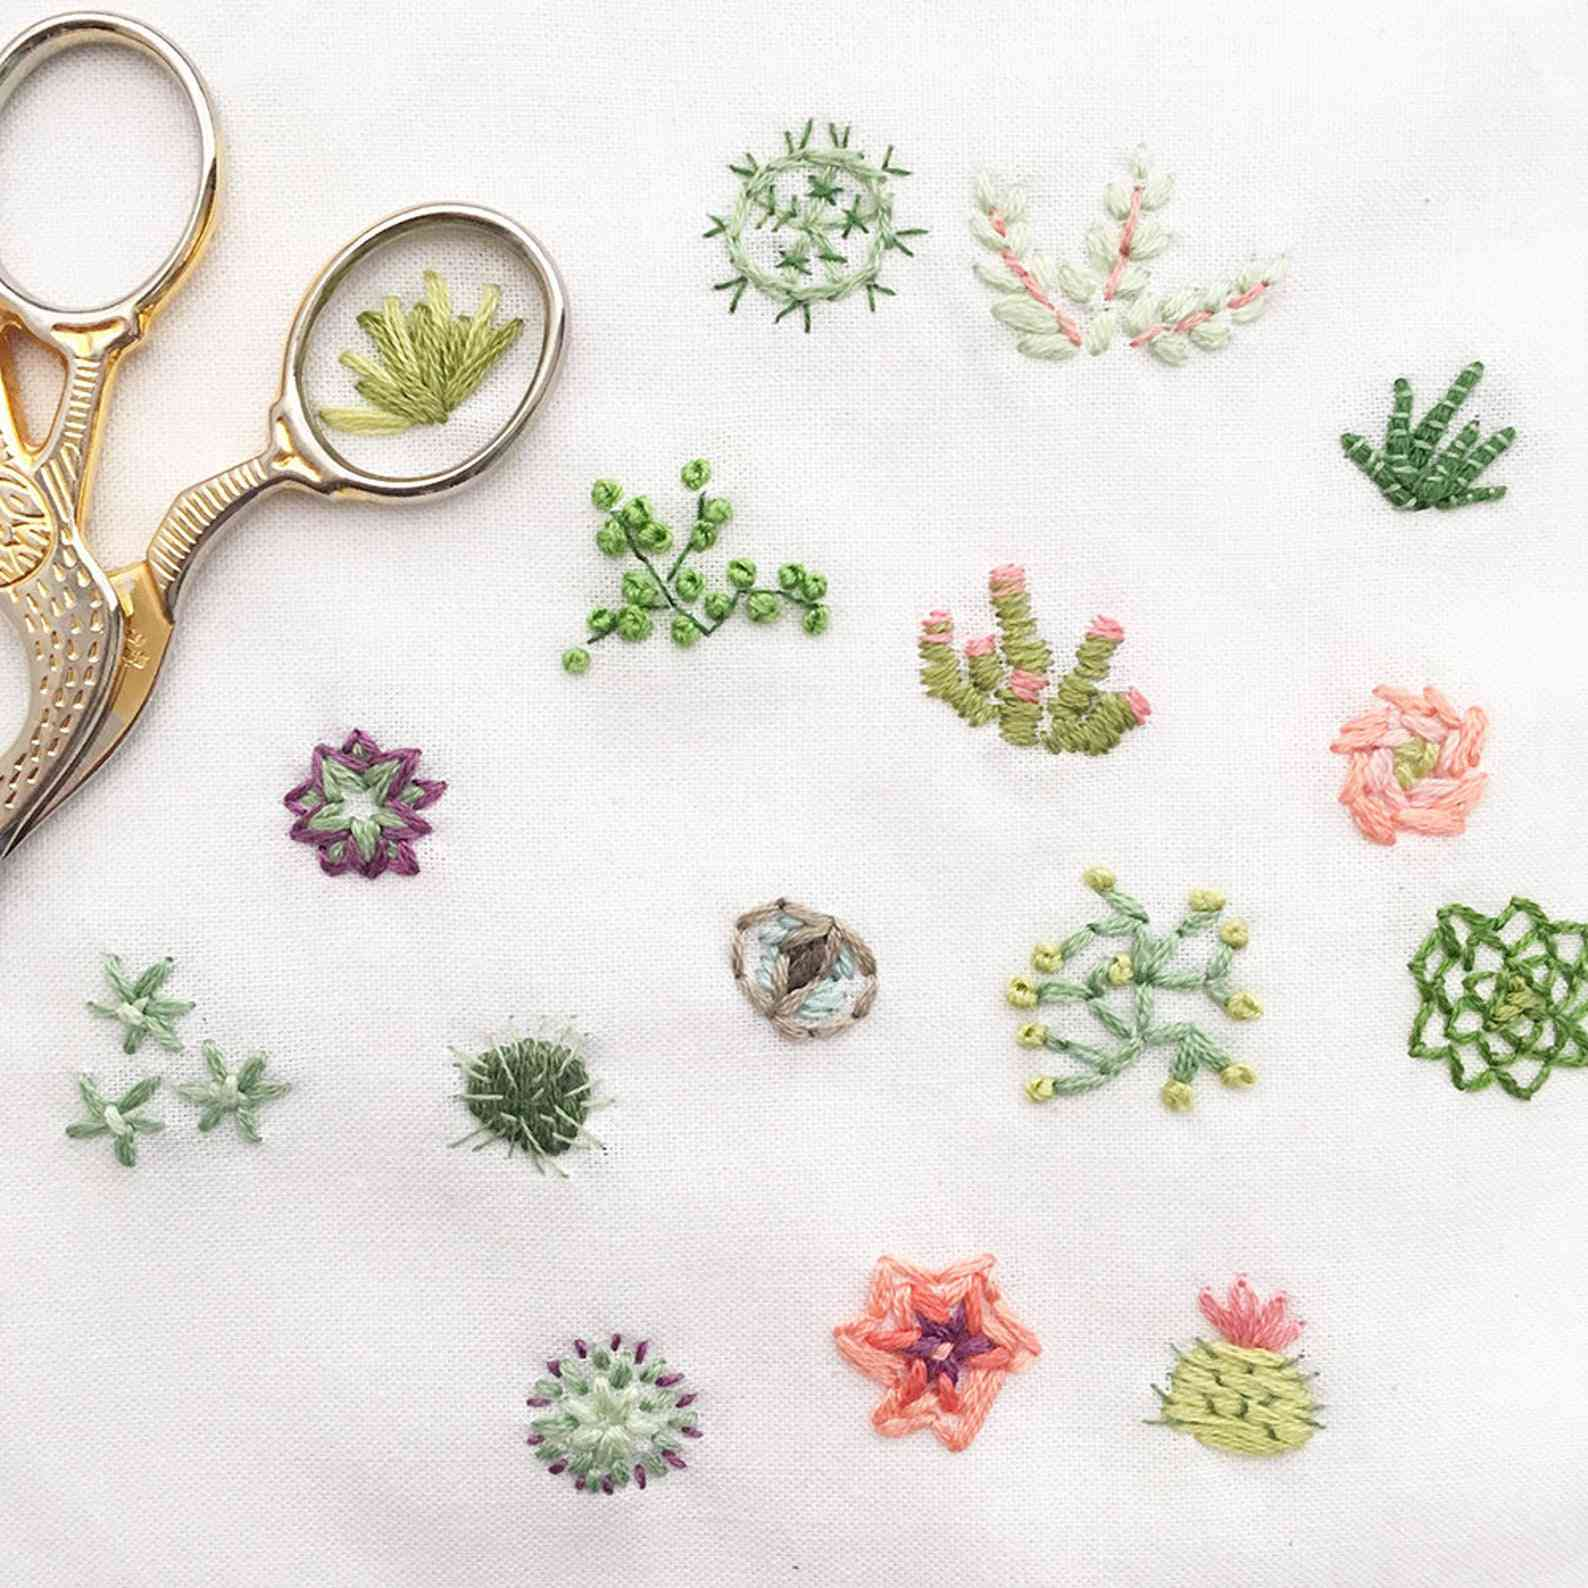 Tiny Succulents Hand Embroidery Pattern